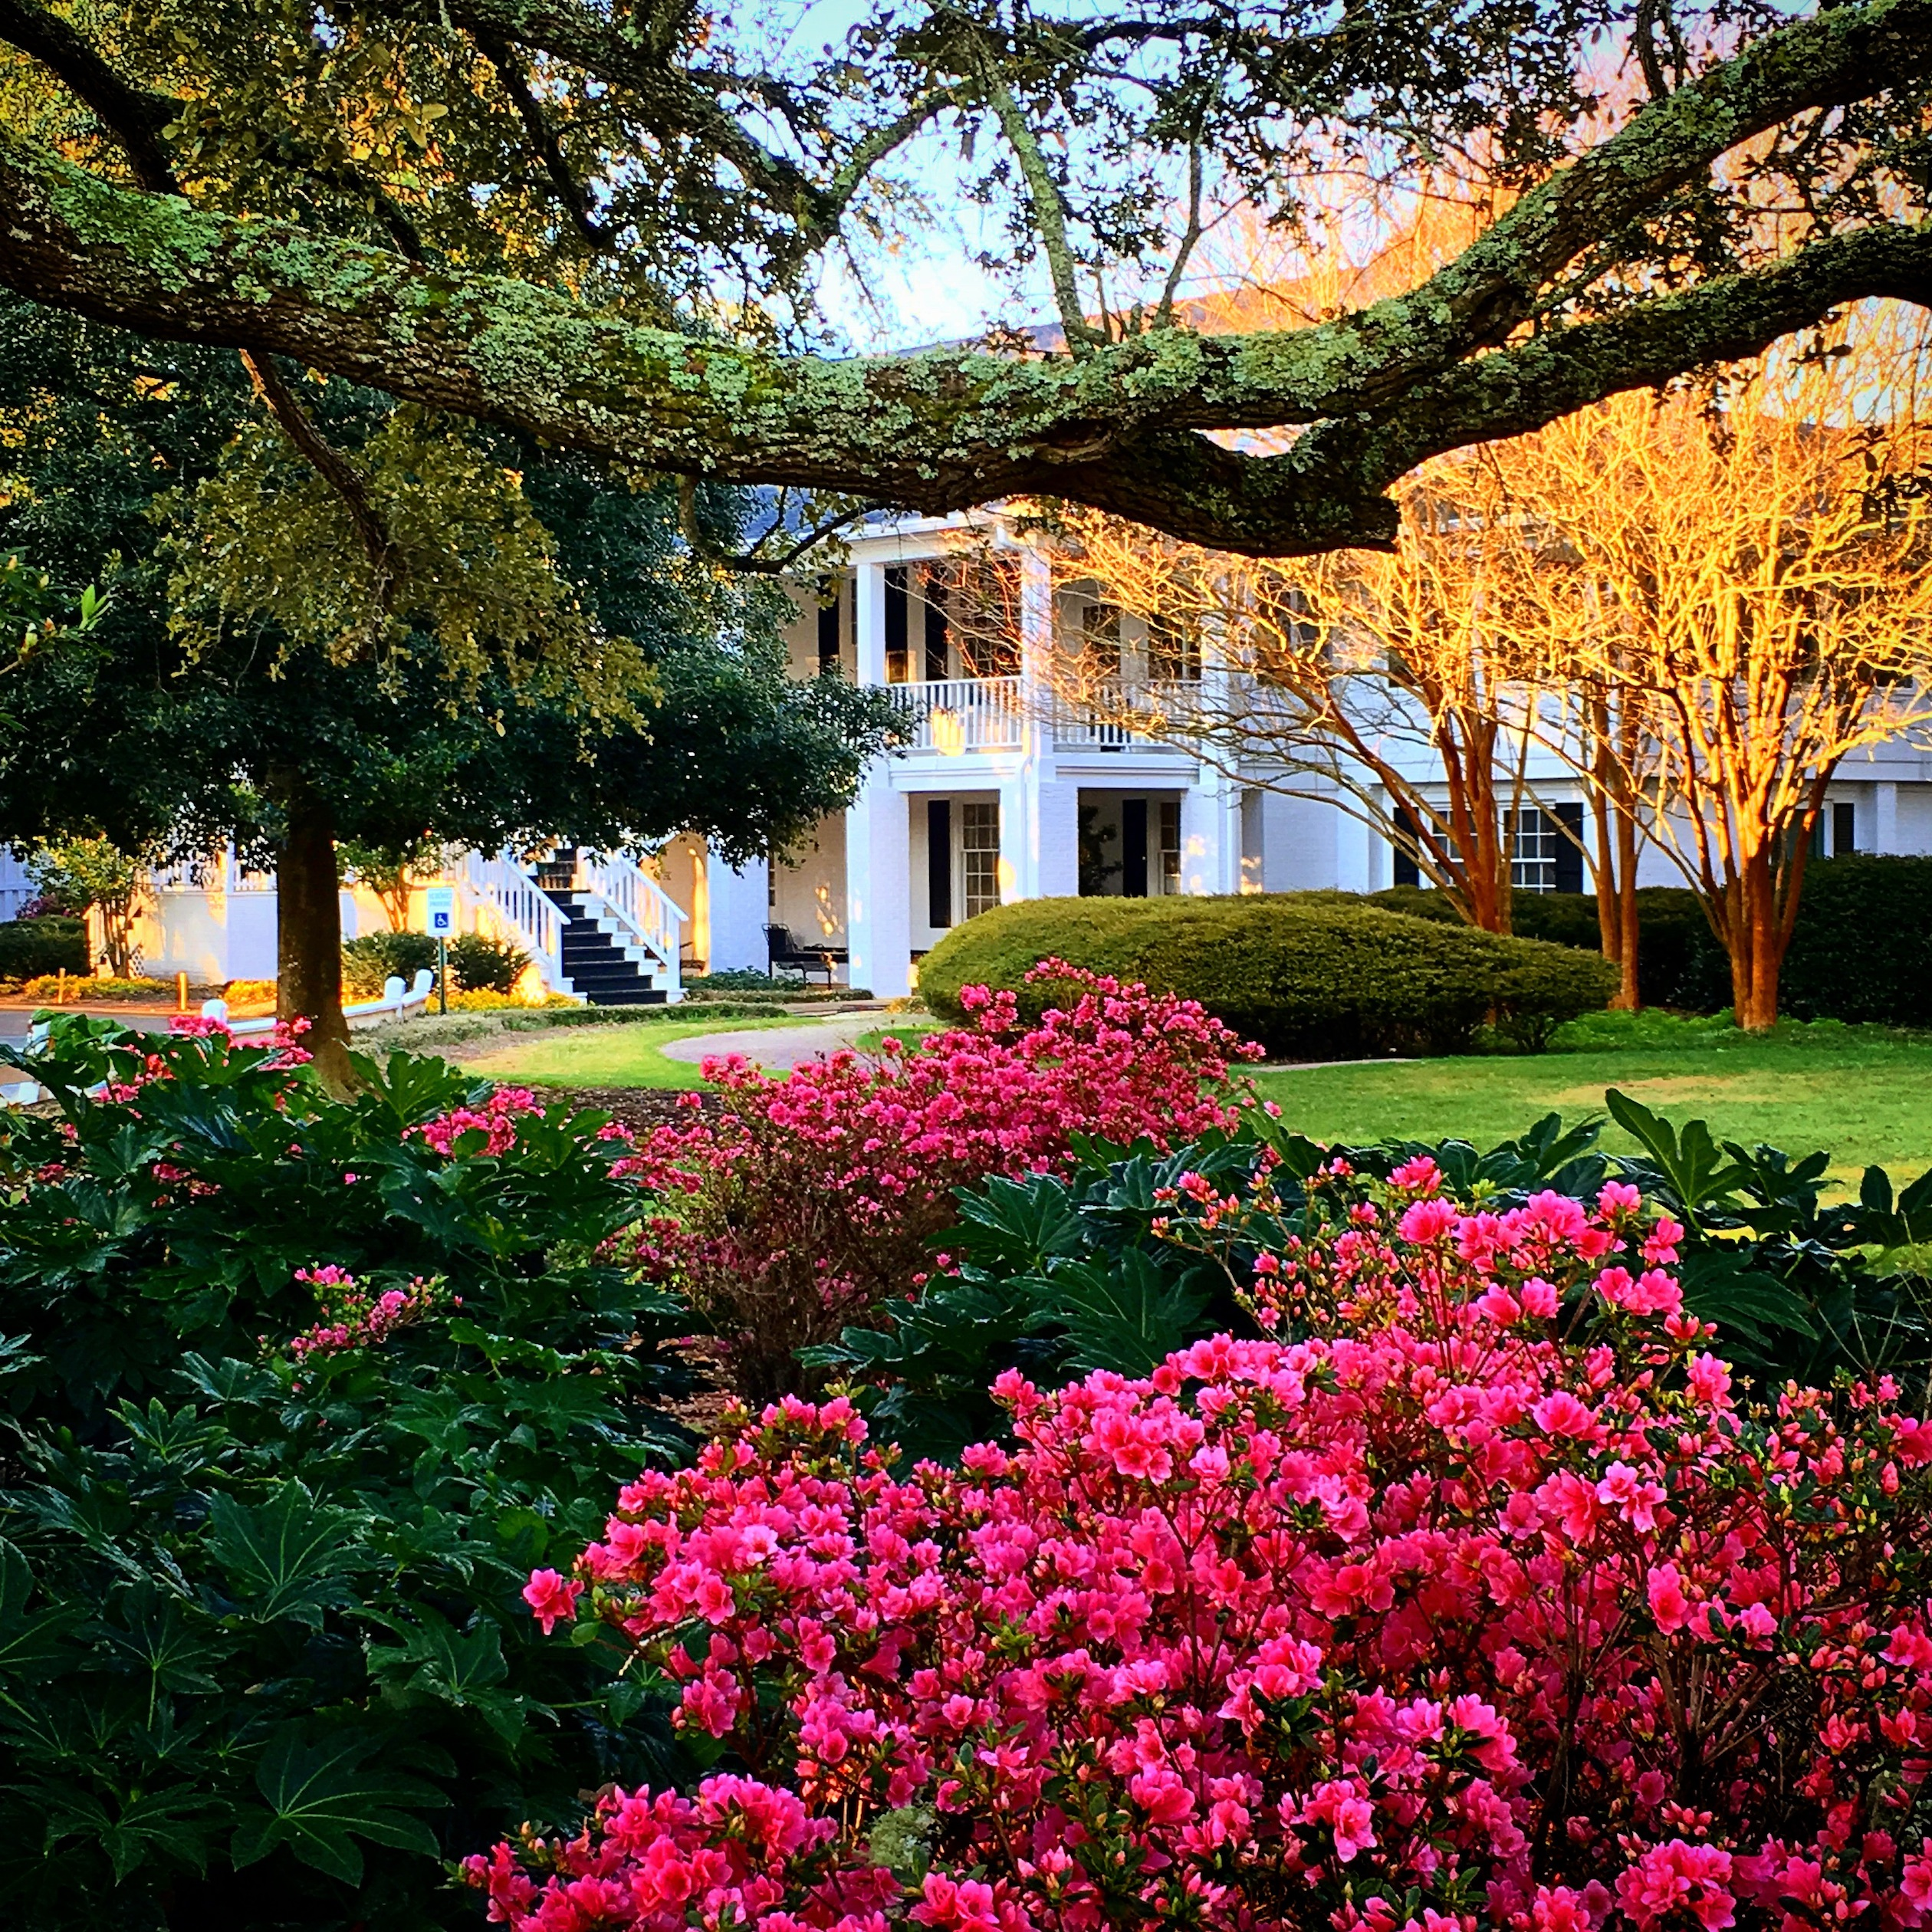 Myrtle Beach S Azalea Package Puts Golfers On Three Courses Known For Spectacular Blooms And Clic Golf Challenges